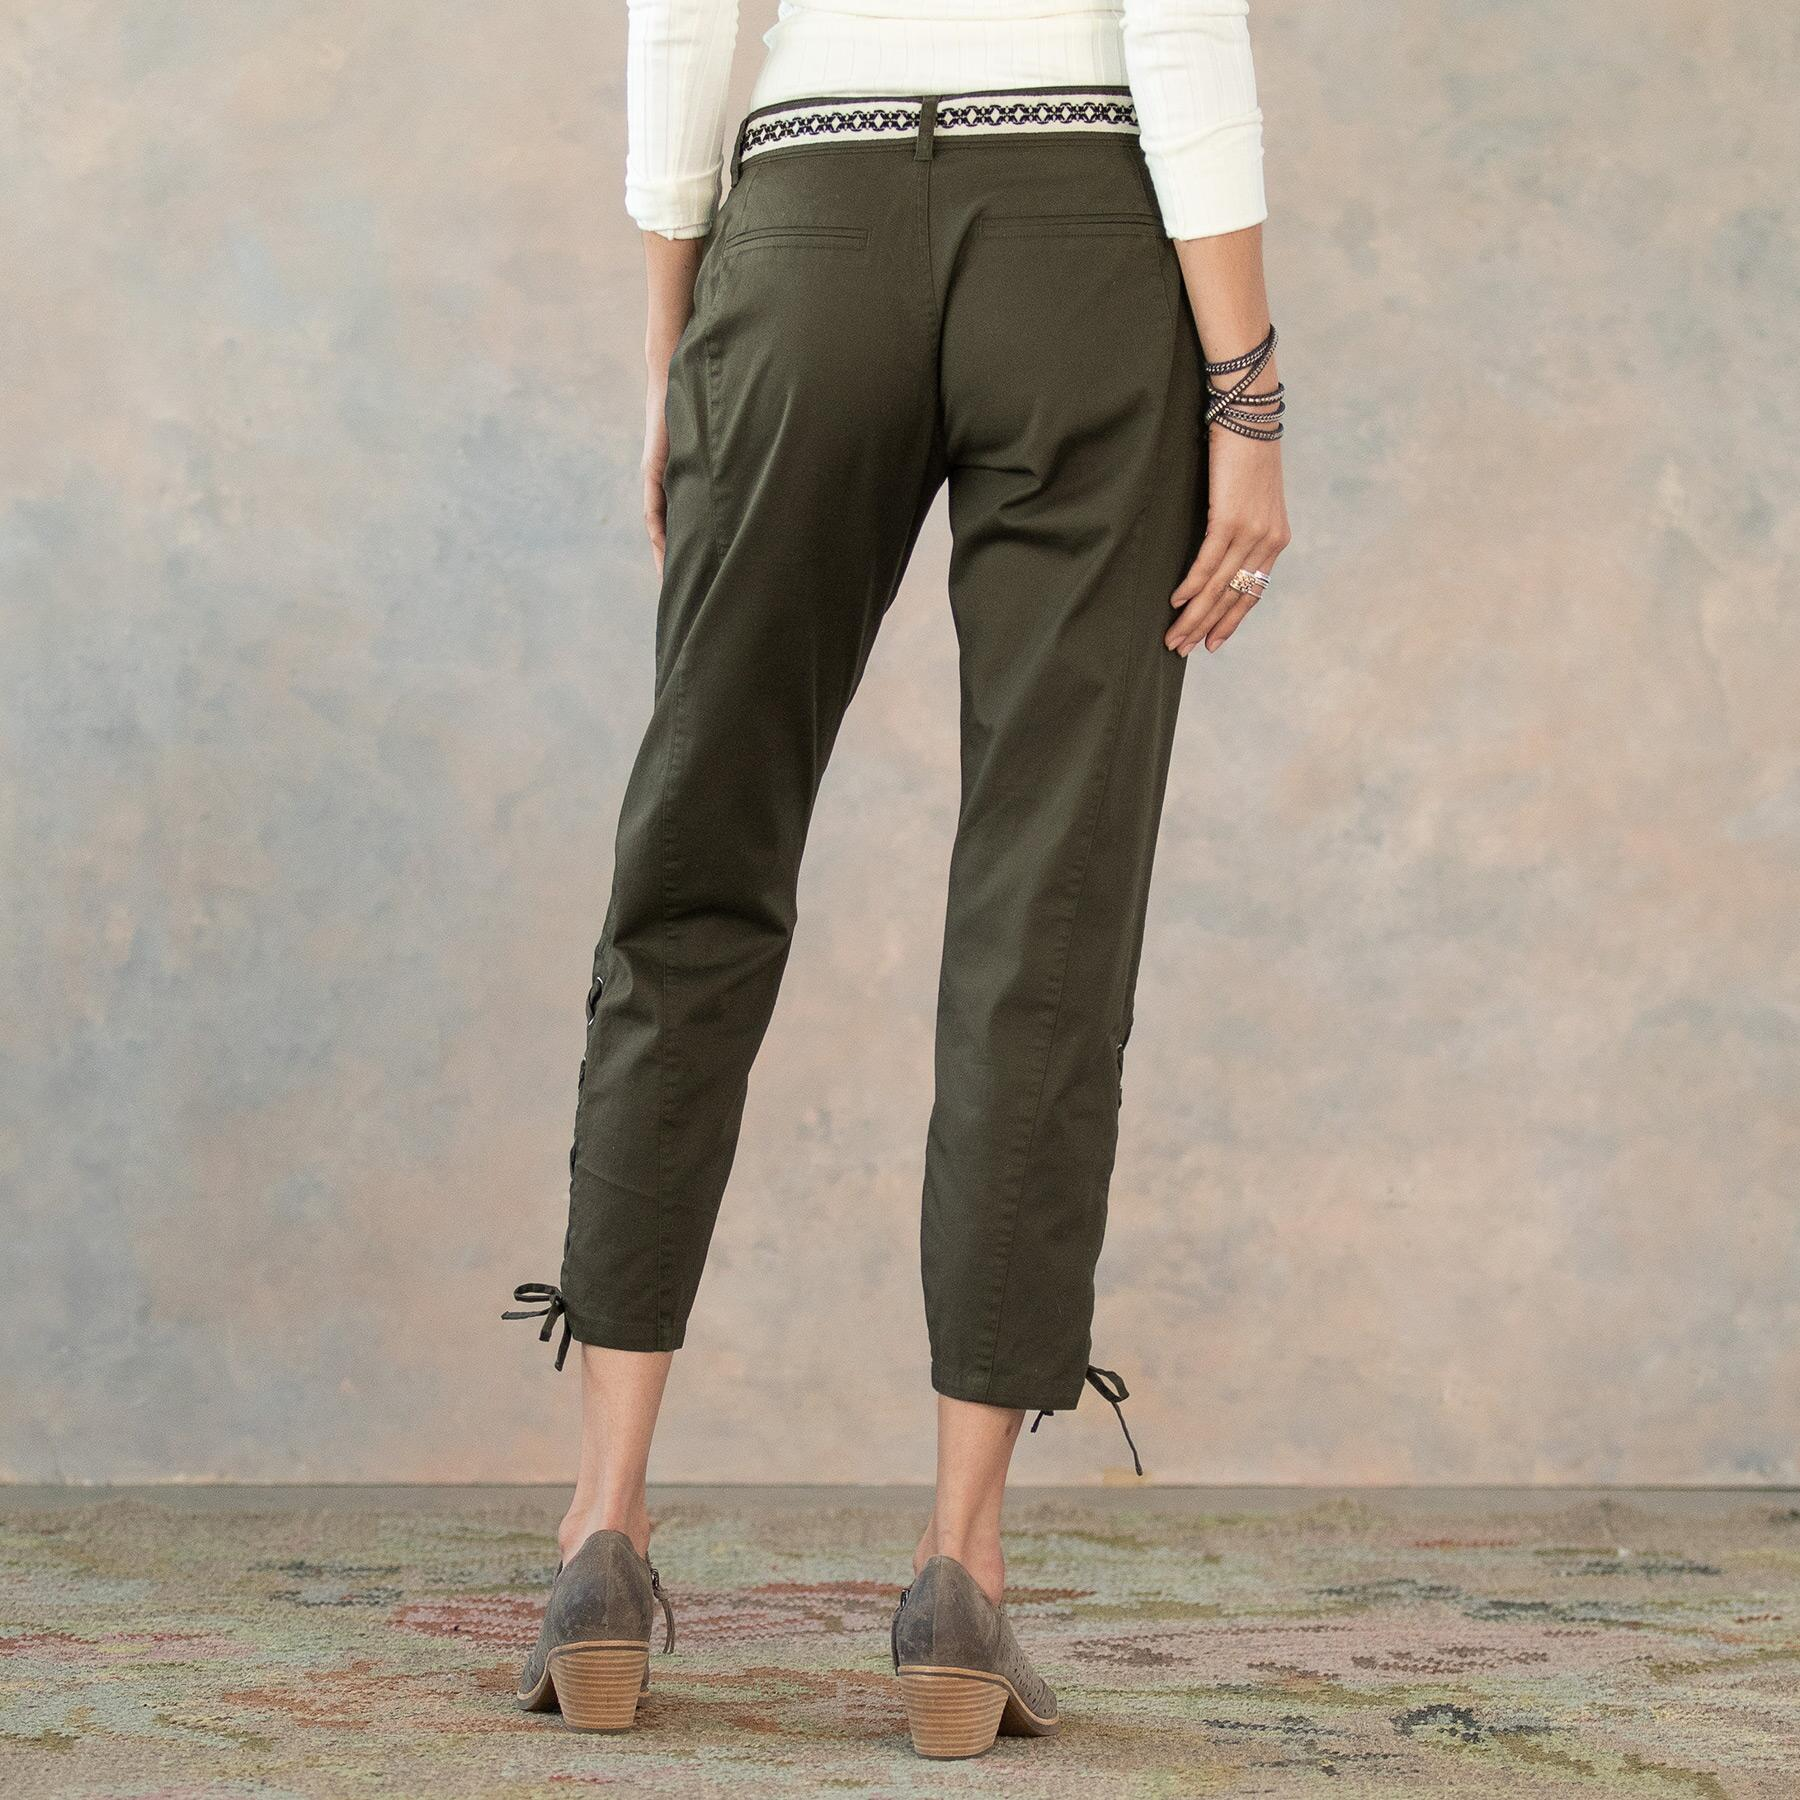 ANKLE DETAIL LACE UP PANTS: View 4